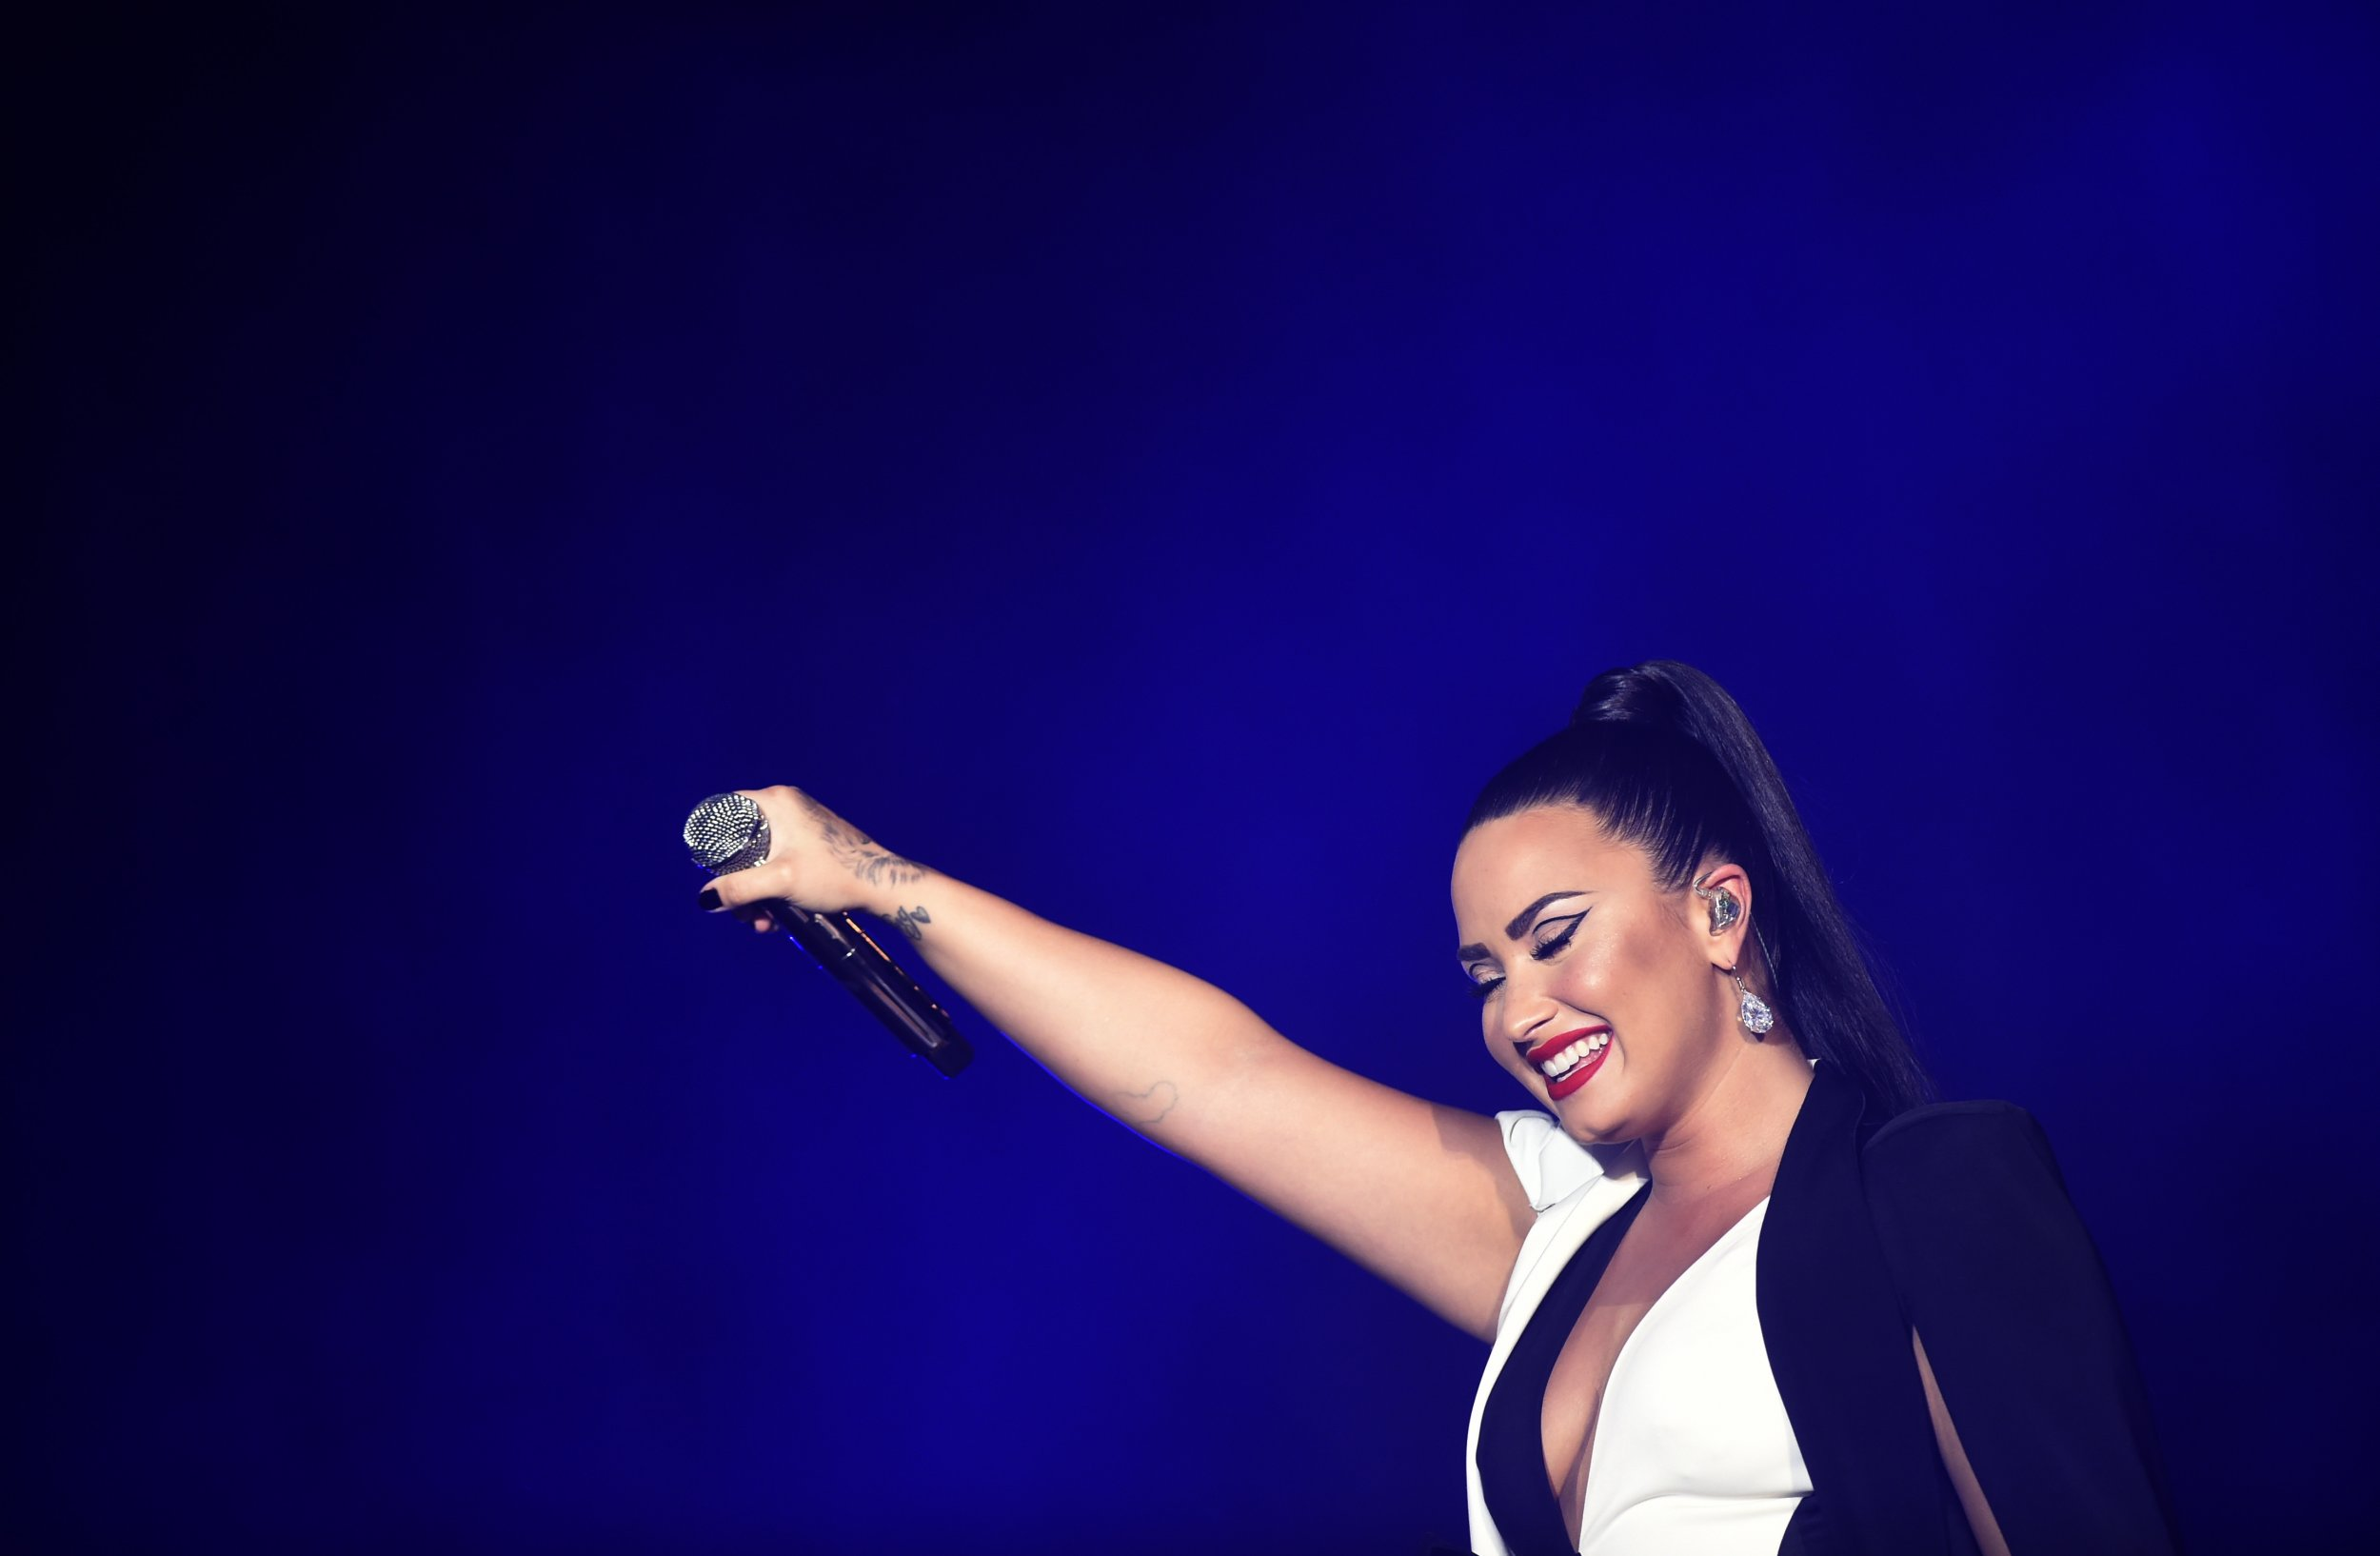 National Helpline Samhsa Substance Abuse And Mental Health >> Inspiring Demi Lovato Lyrics and Quotes From 'Skyscraper ...